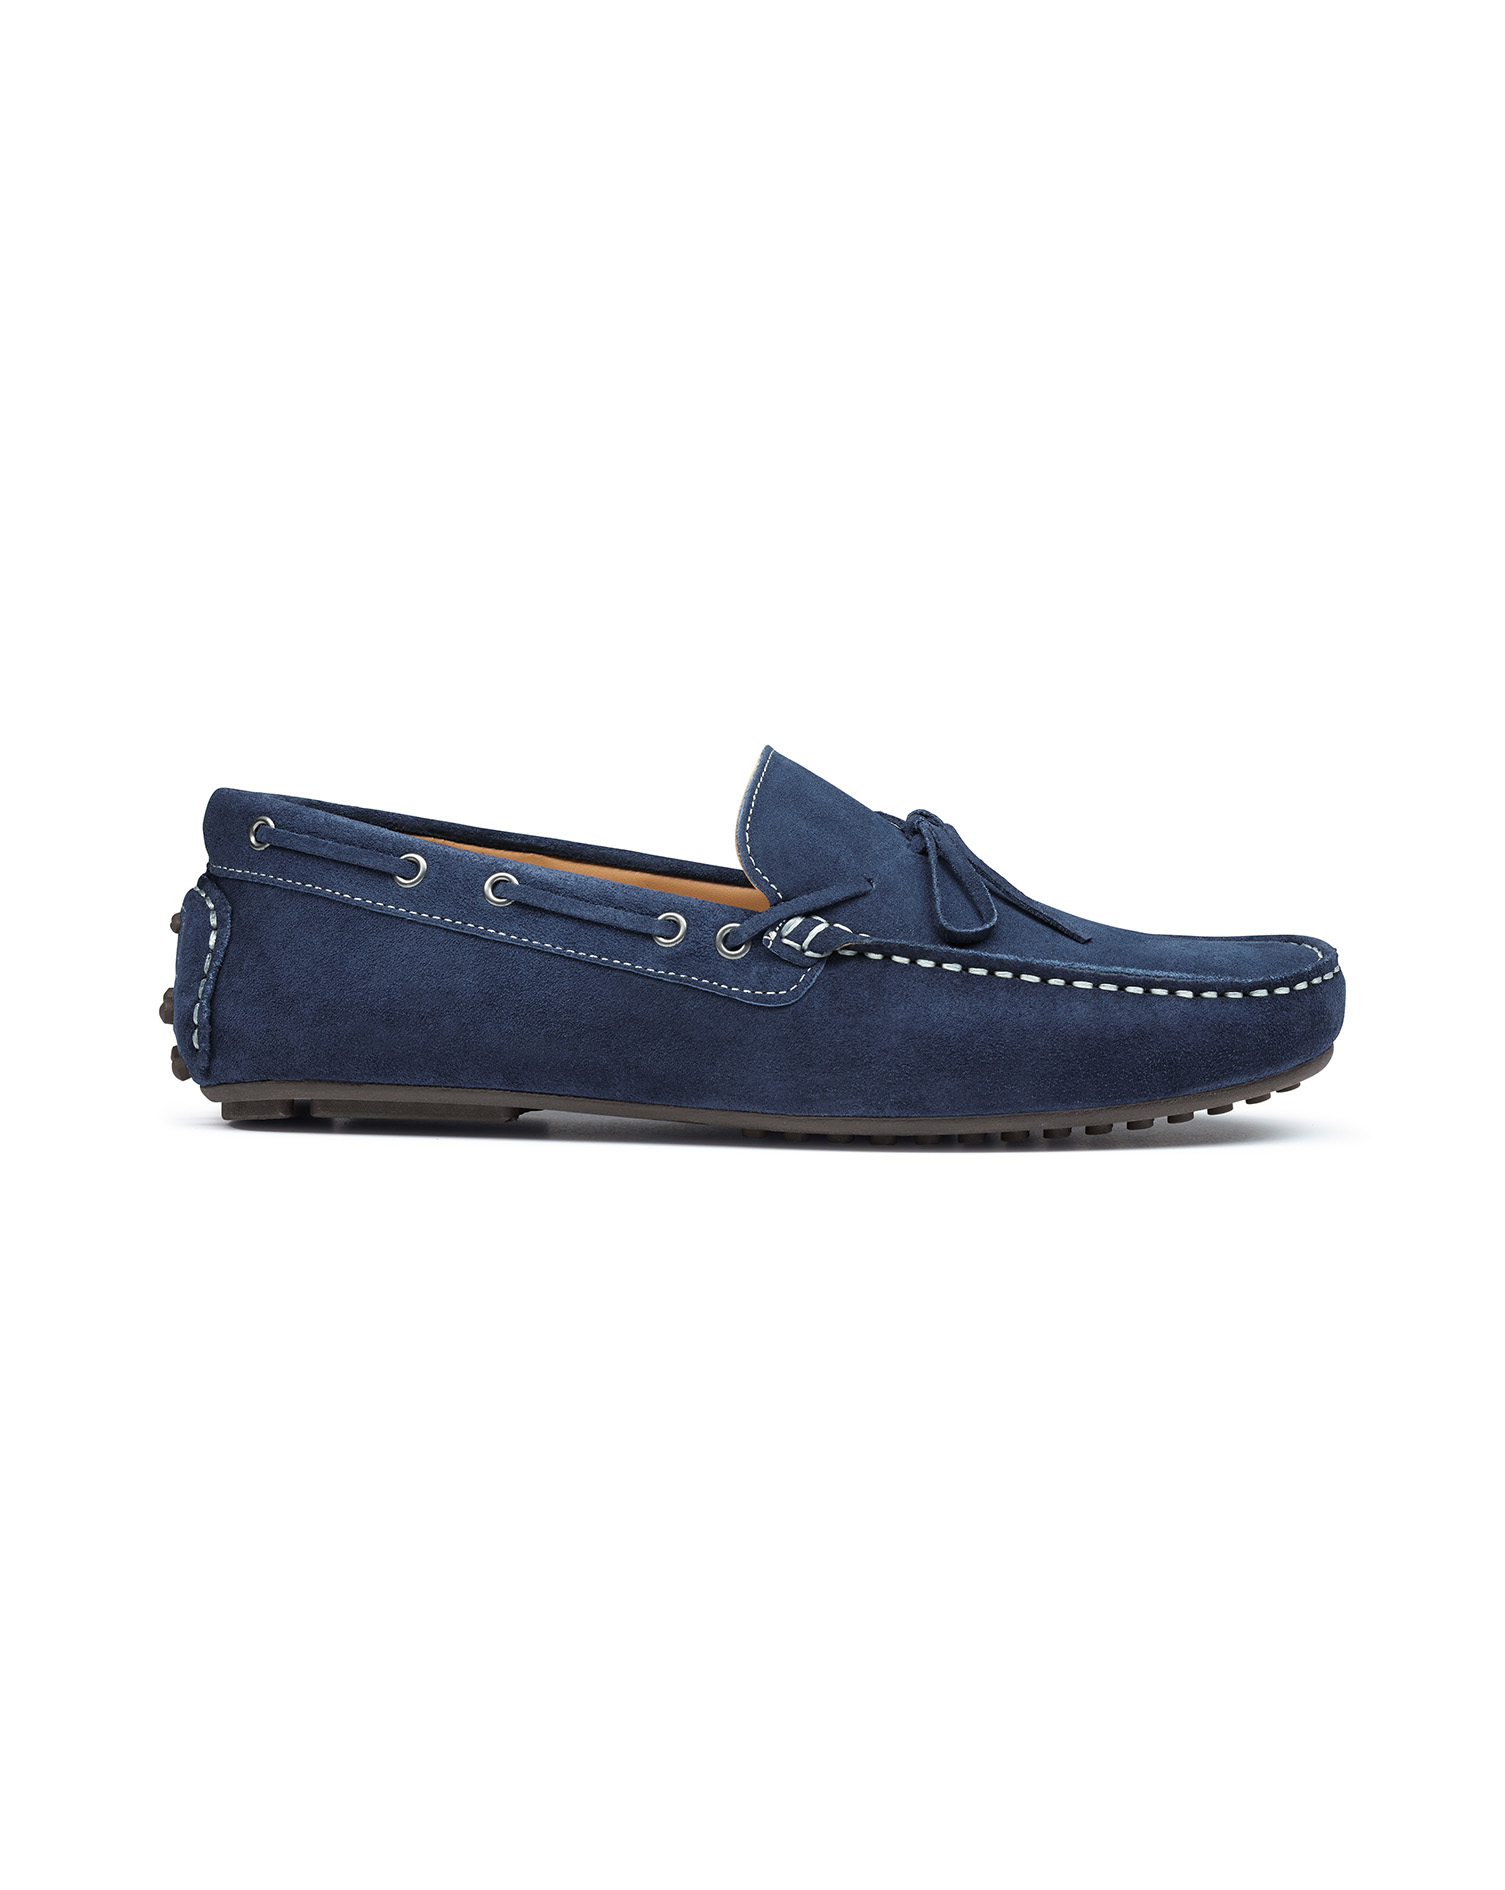 Blue Suede Driving Loafer Size 12 R by Charles Tyrwhitt